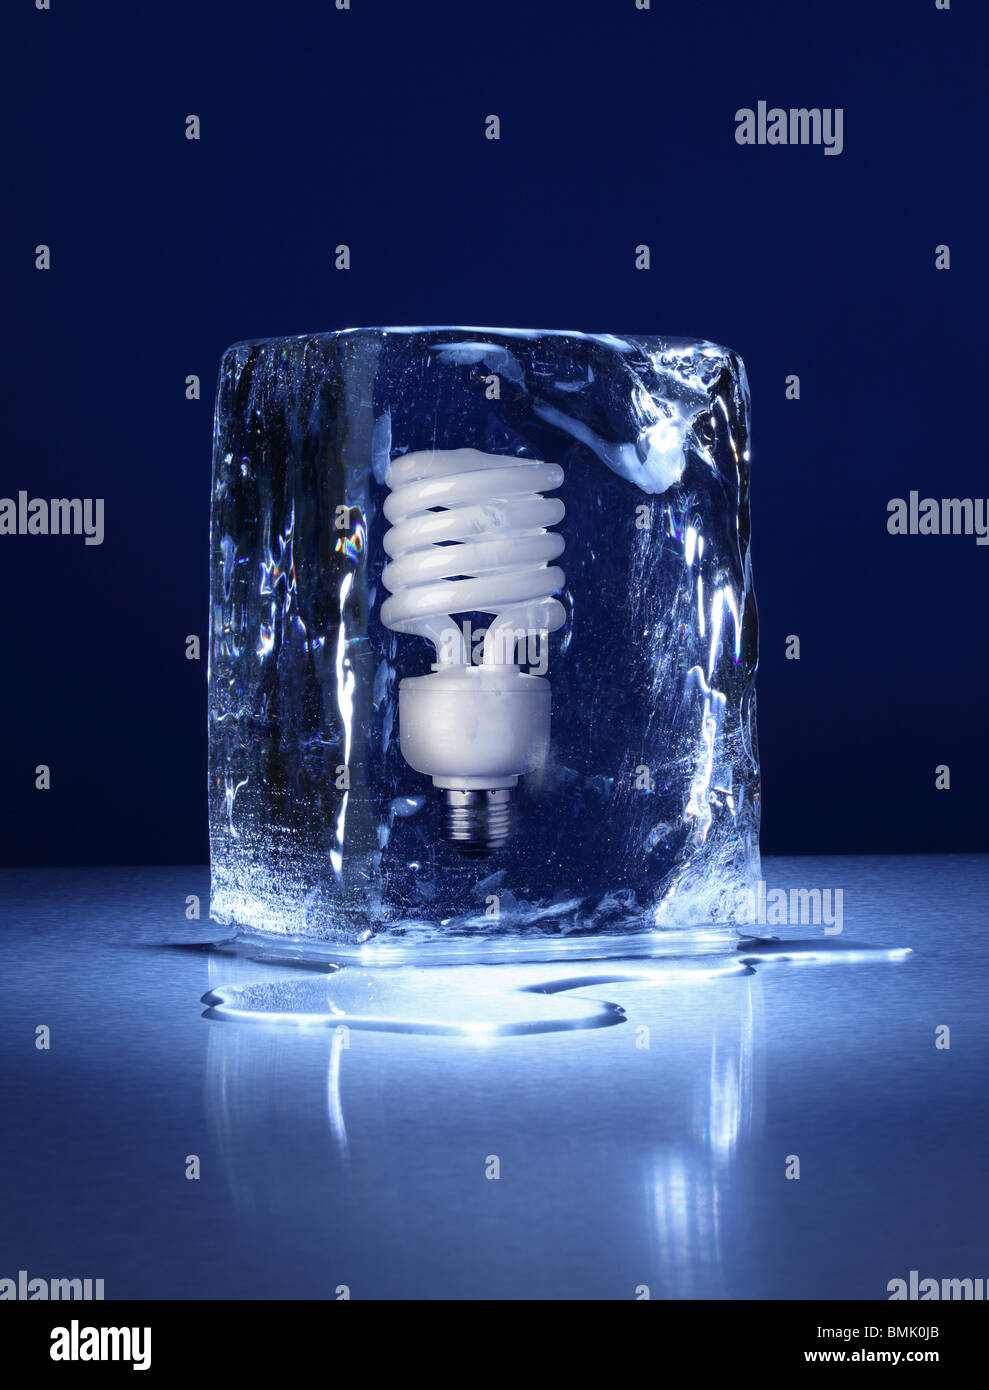 a frozen block of ice with a compact light bulb frozen inside on a